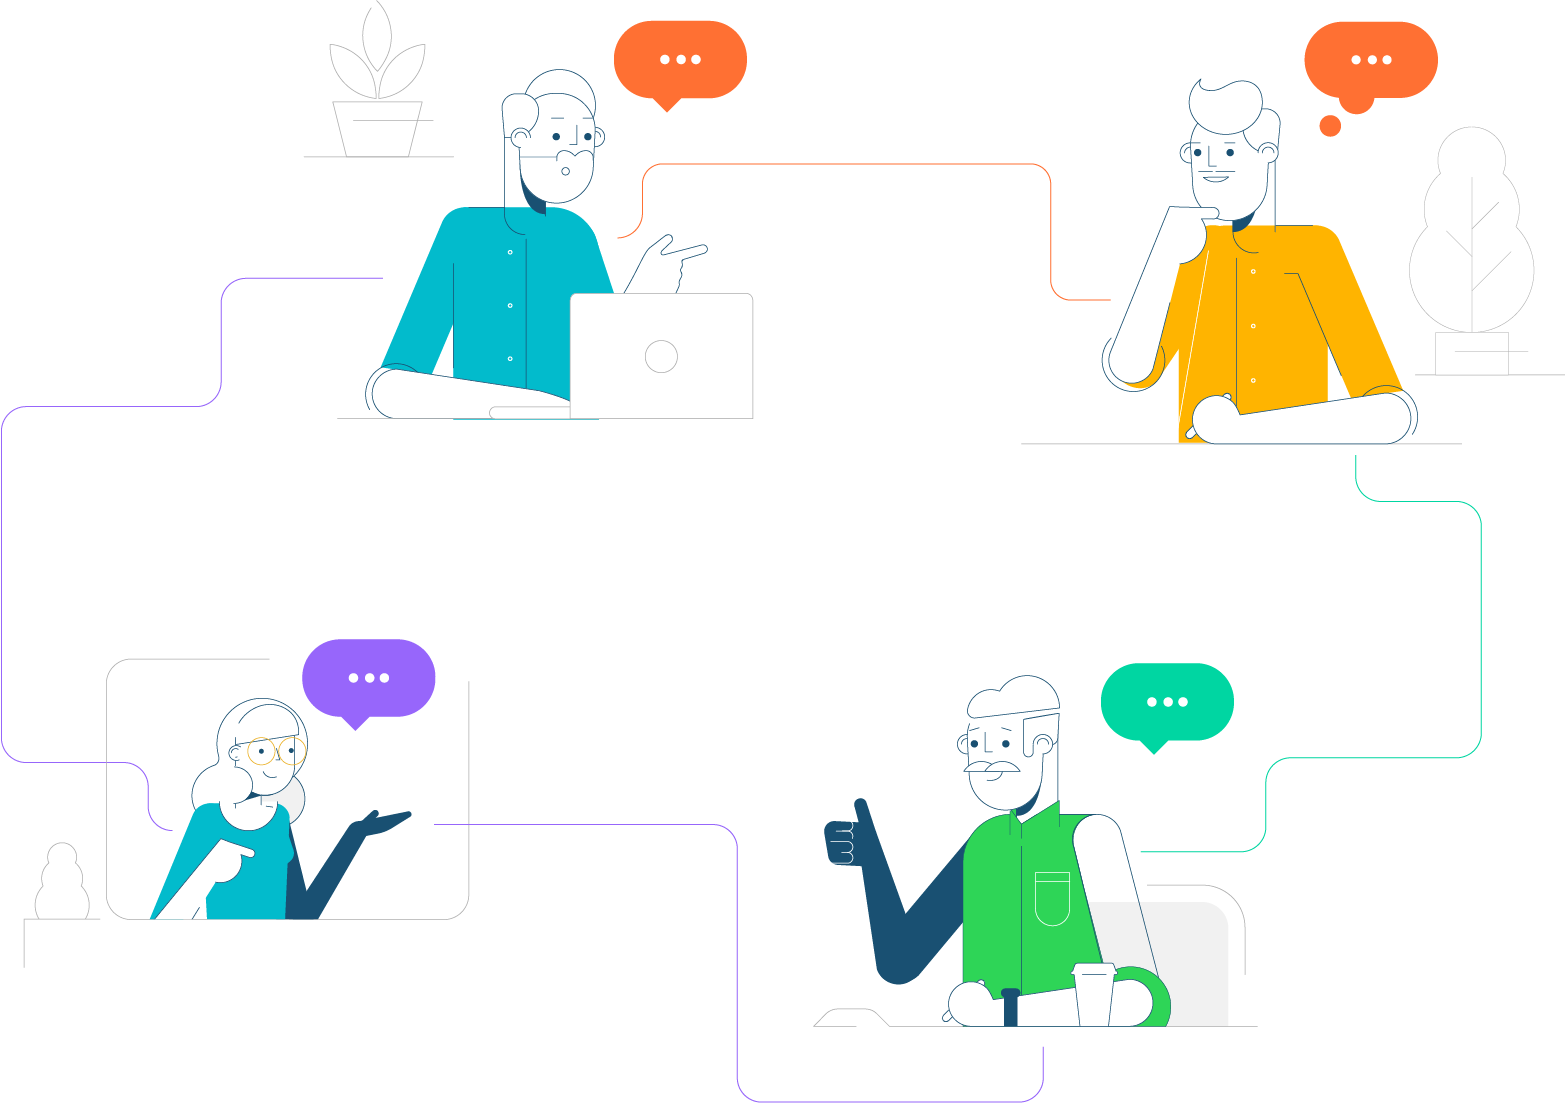 Illustration a team of 4 people talking together